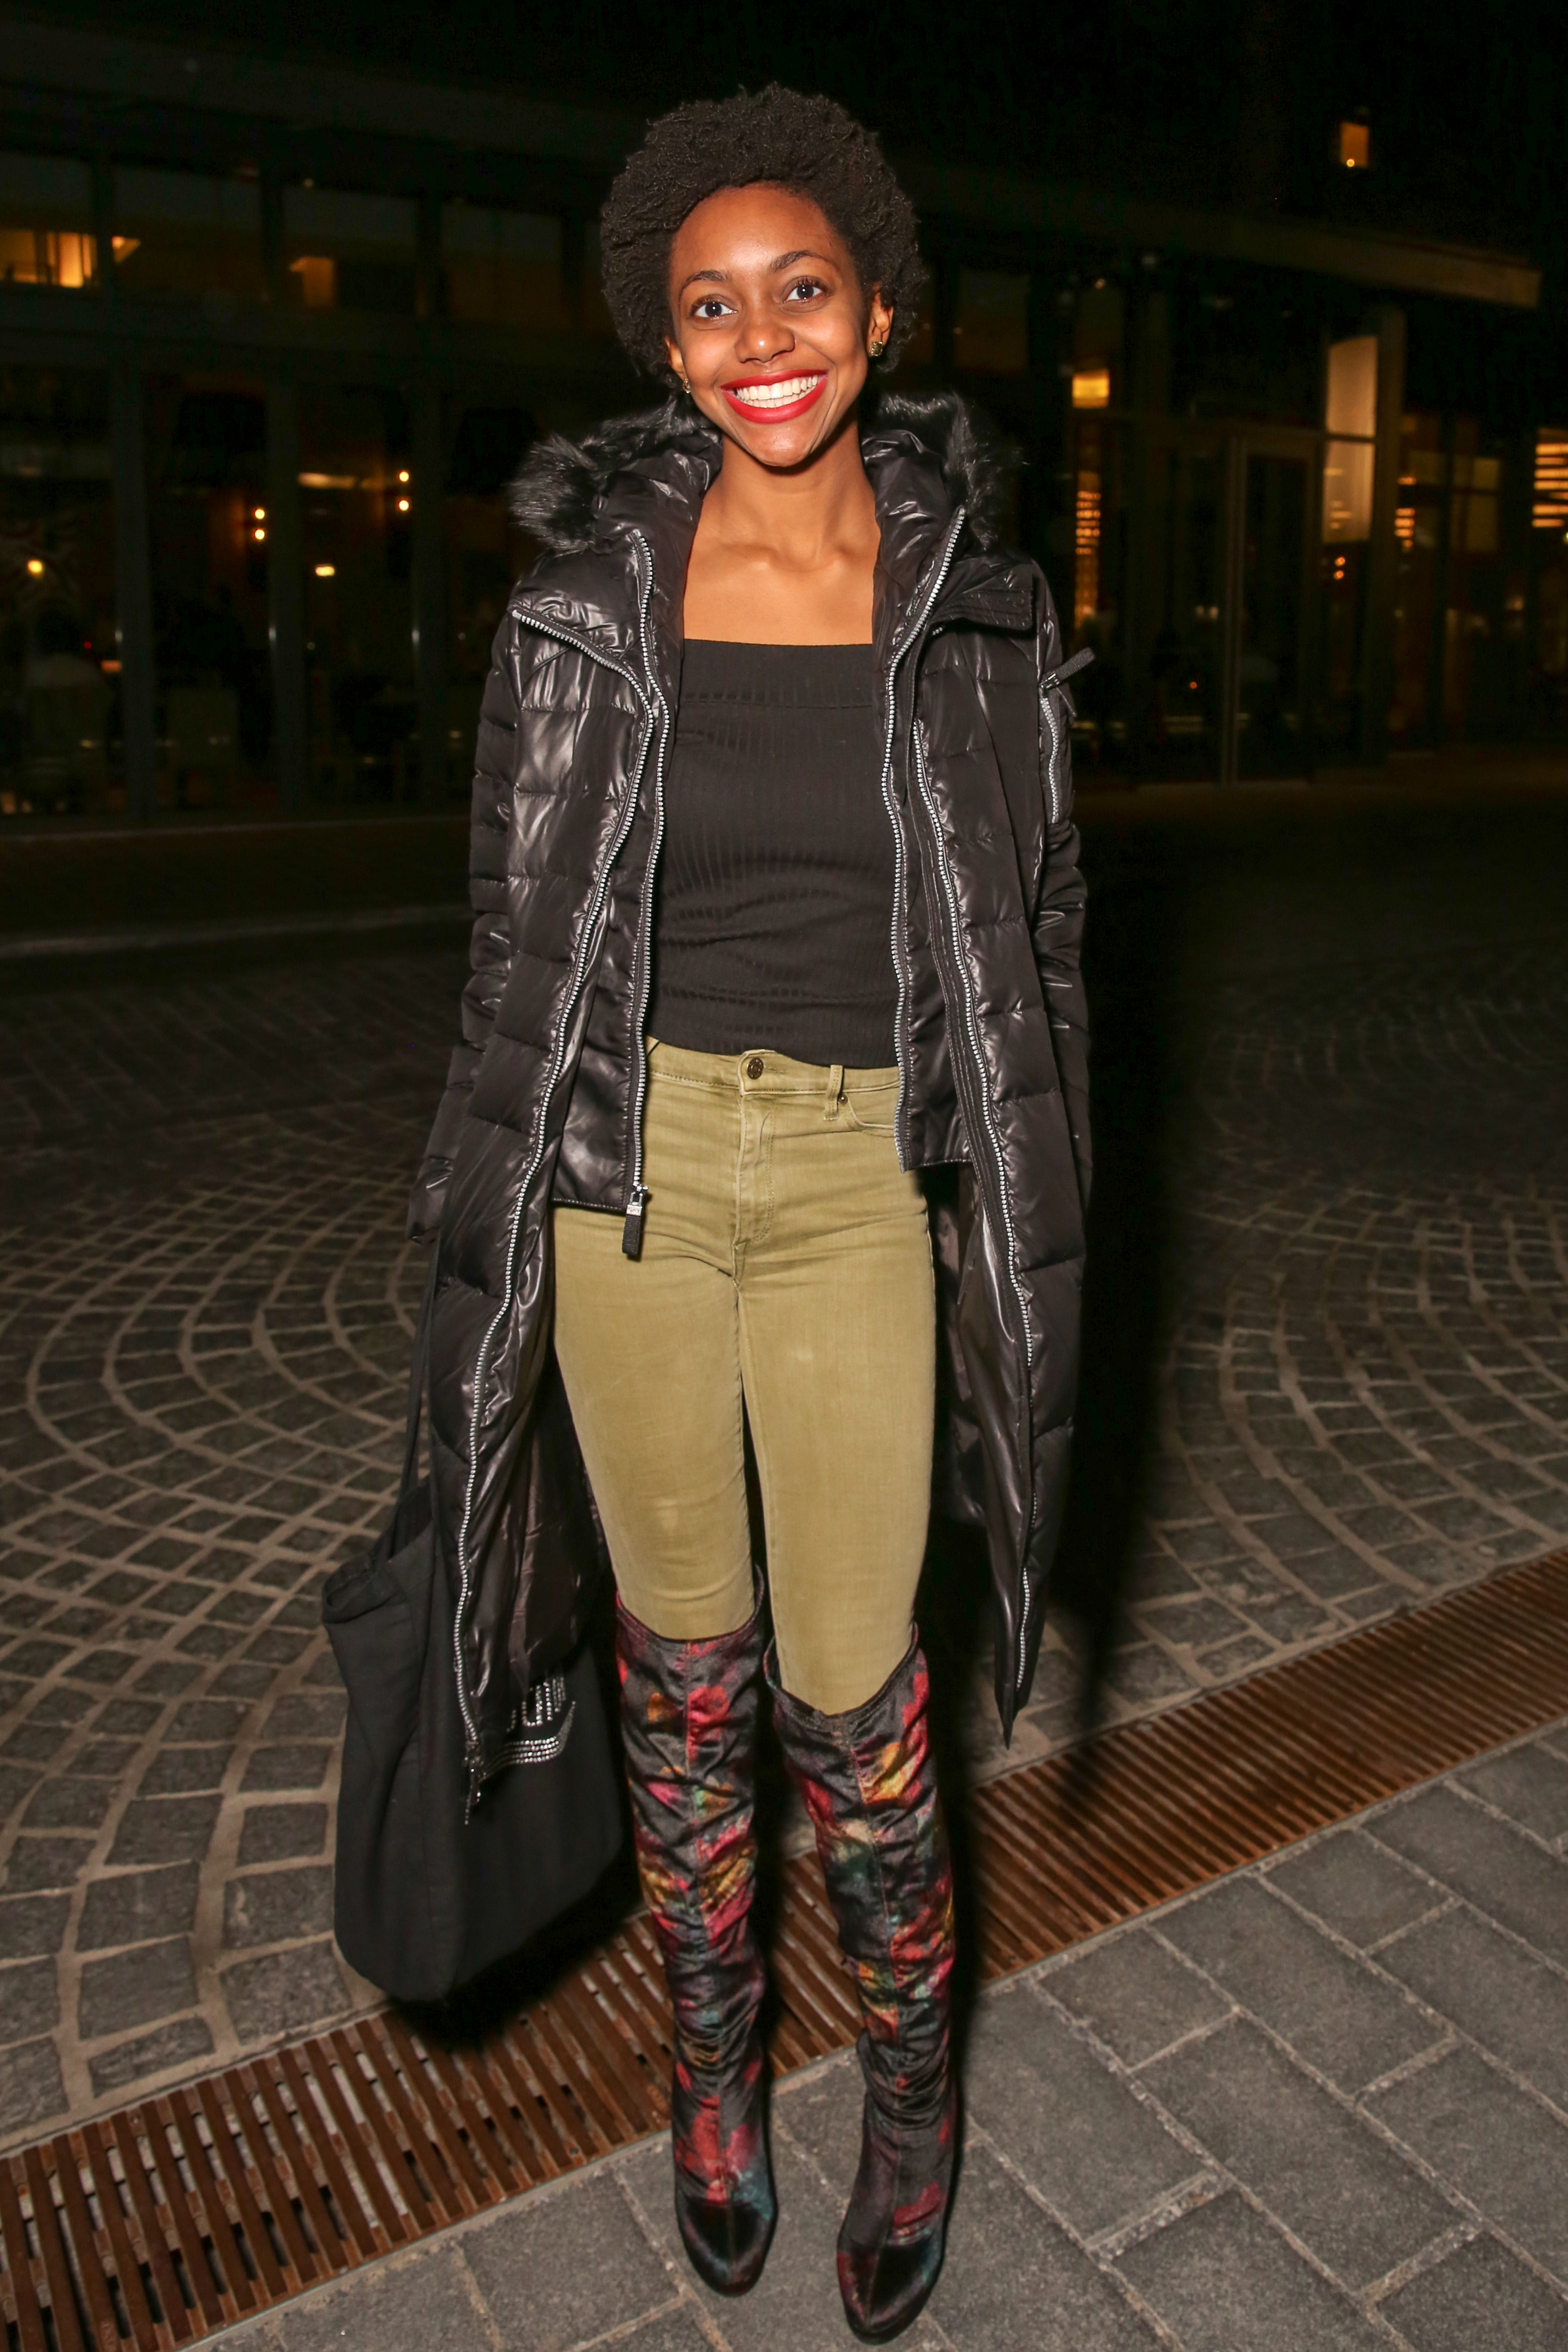 The debate is over - puffy jackets are fashionable, especially with Kayla Williams' over-the-knee boots.{&nbsp;}(Amanda Andrade-Rhoades/DC Refined)<p></p>